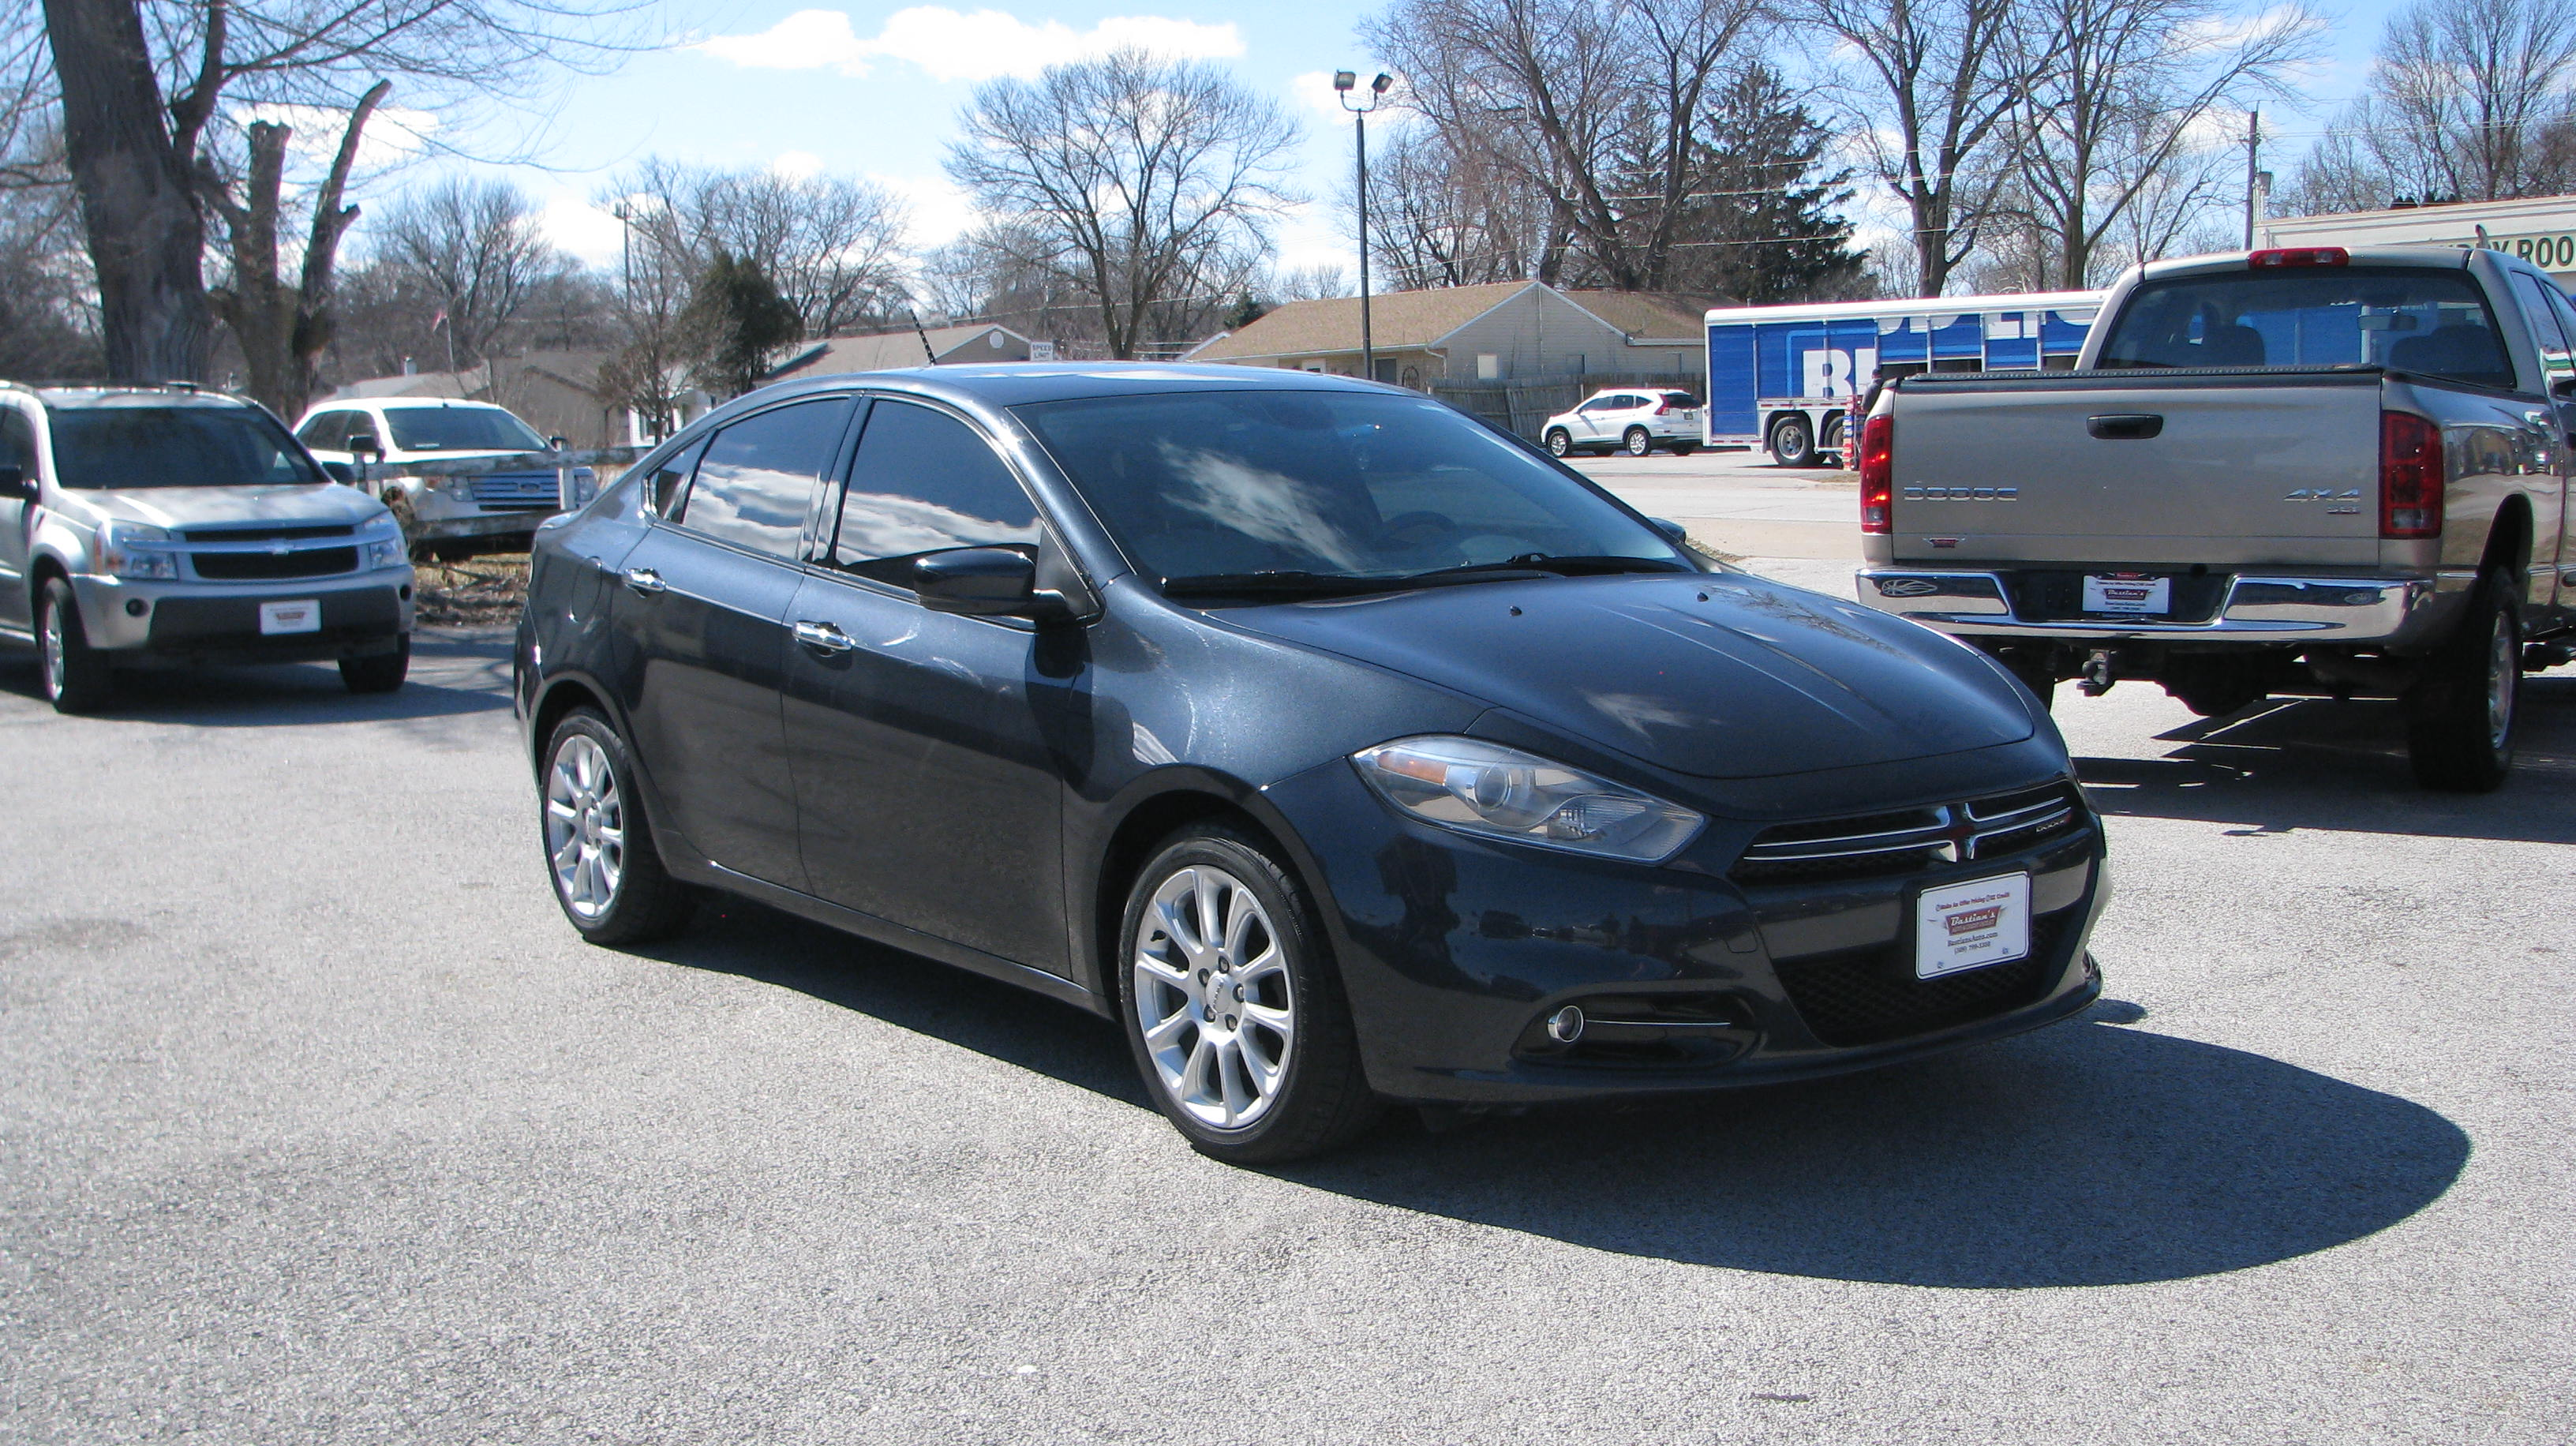 stall recalled h problem news for dodge dart engine